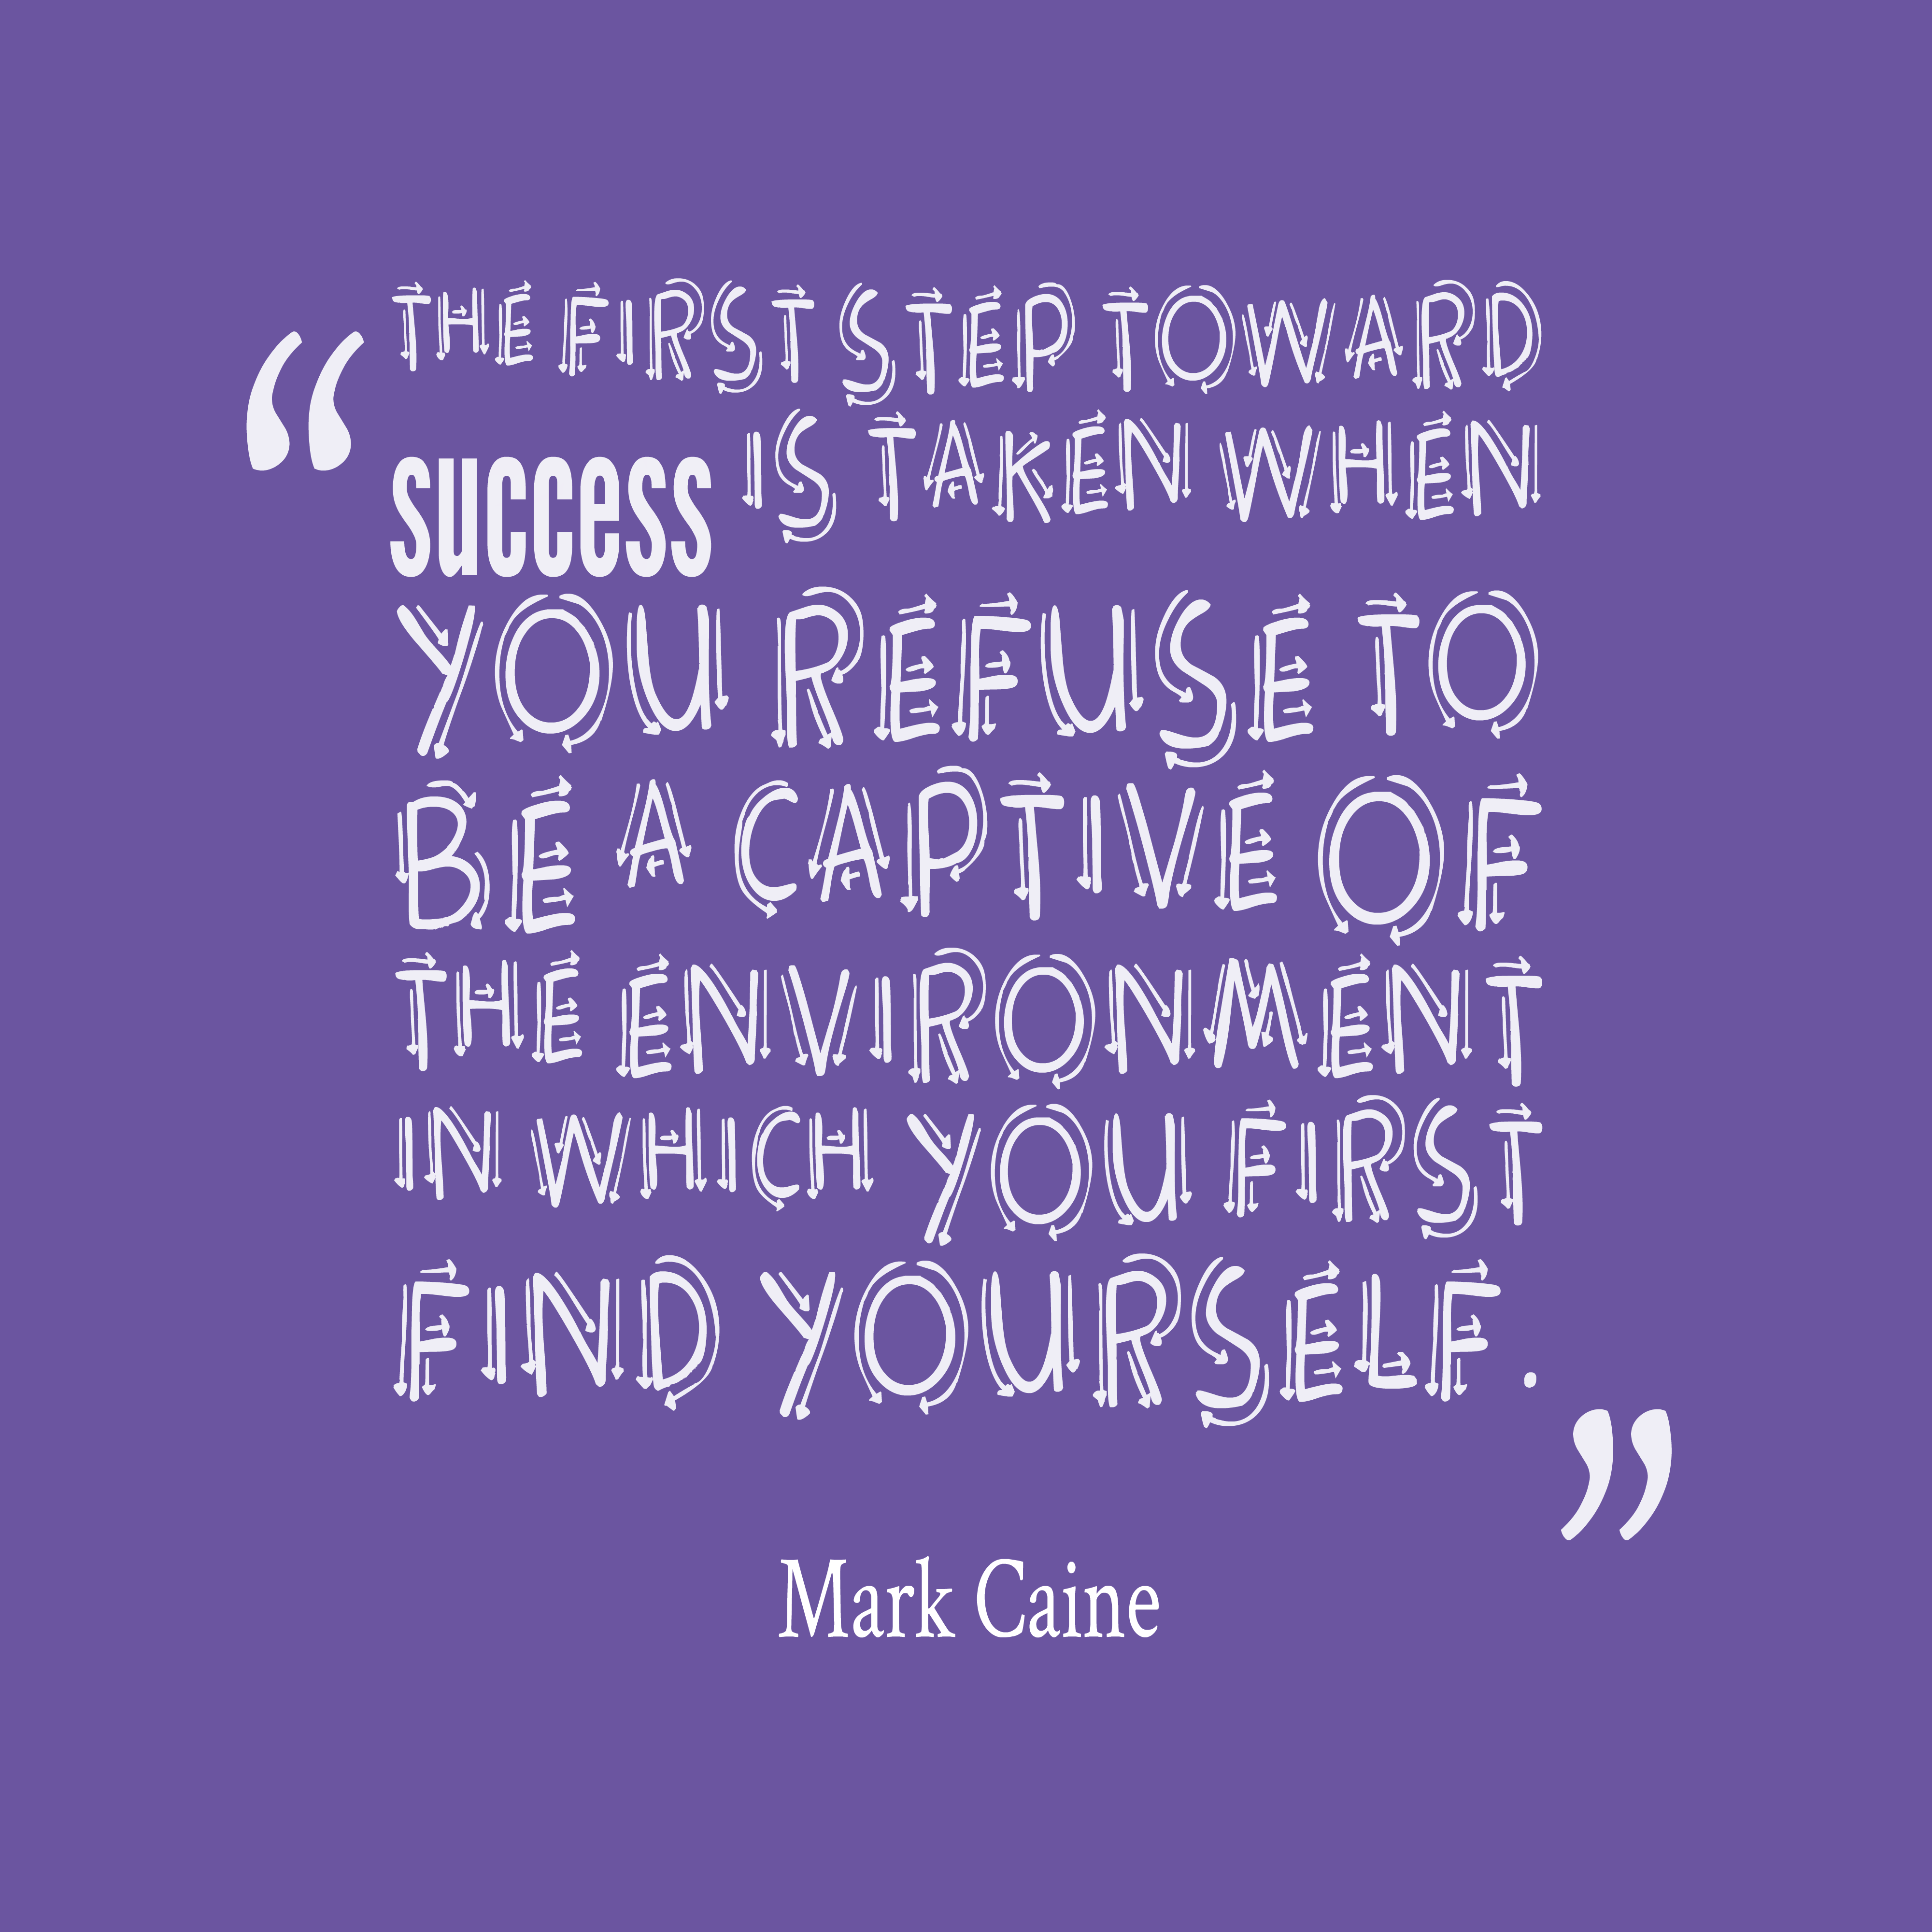 Mark Caine Quote About Success